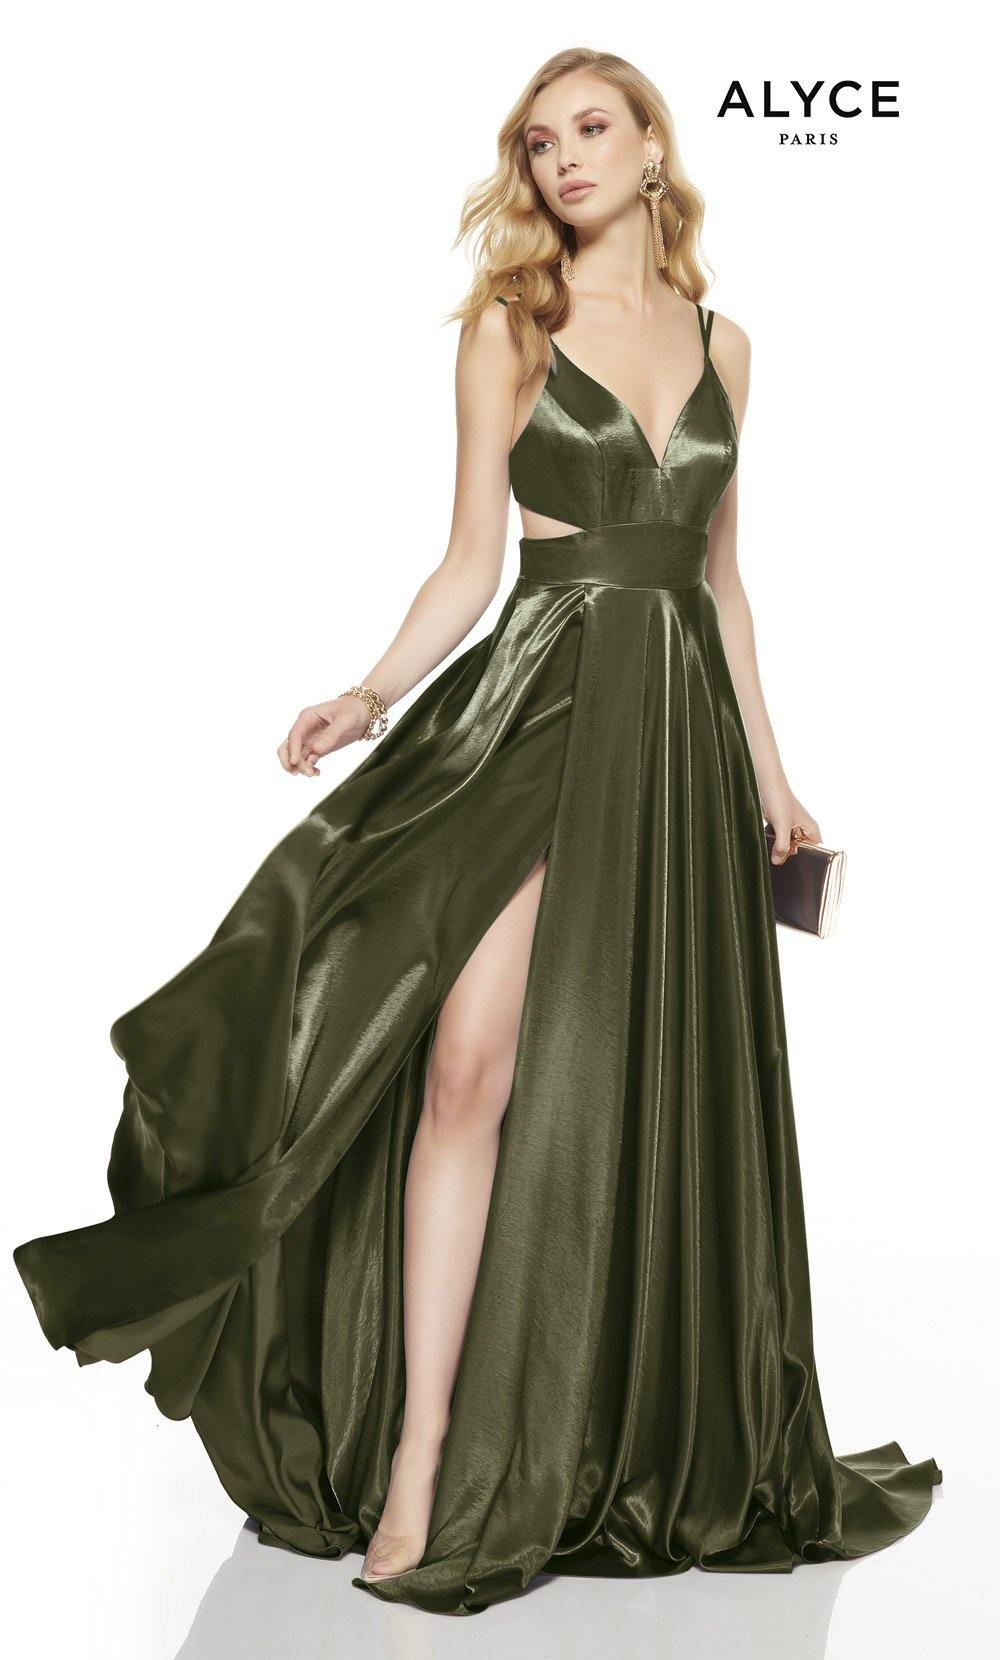 Olive Green prom dress with a v-neckline, side cutouts and a high slit